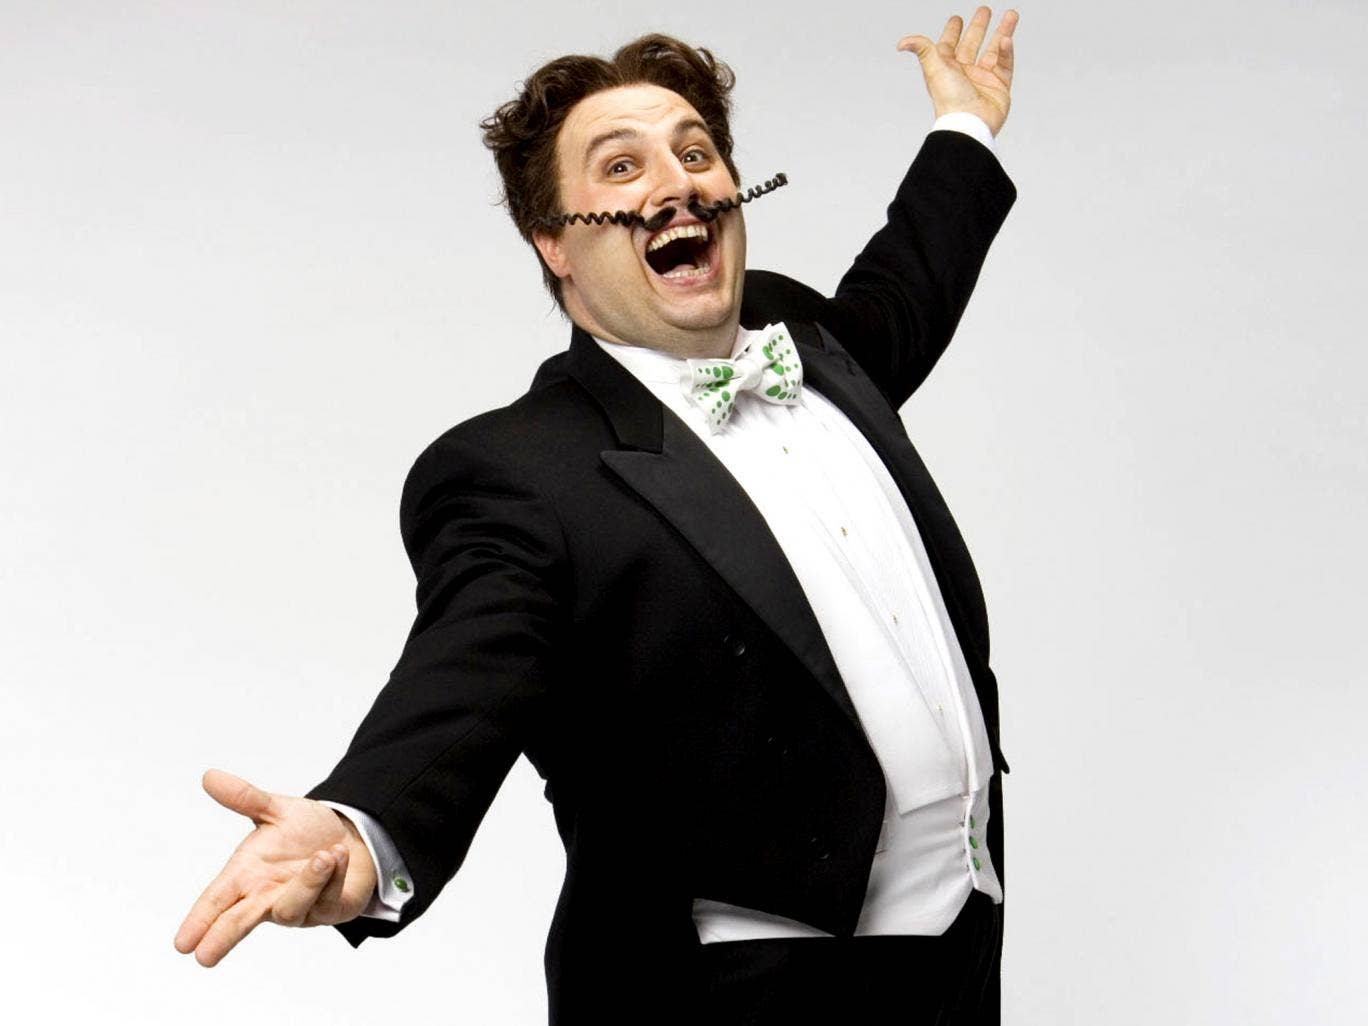 The Go Compare bloke. A recent survey established that 96 per cent of people hate online video ads